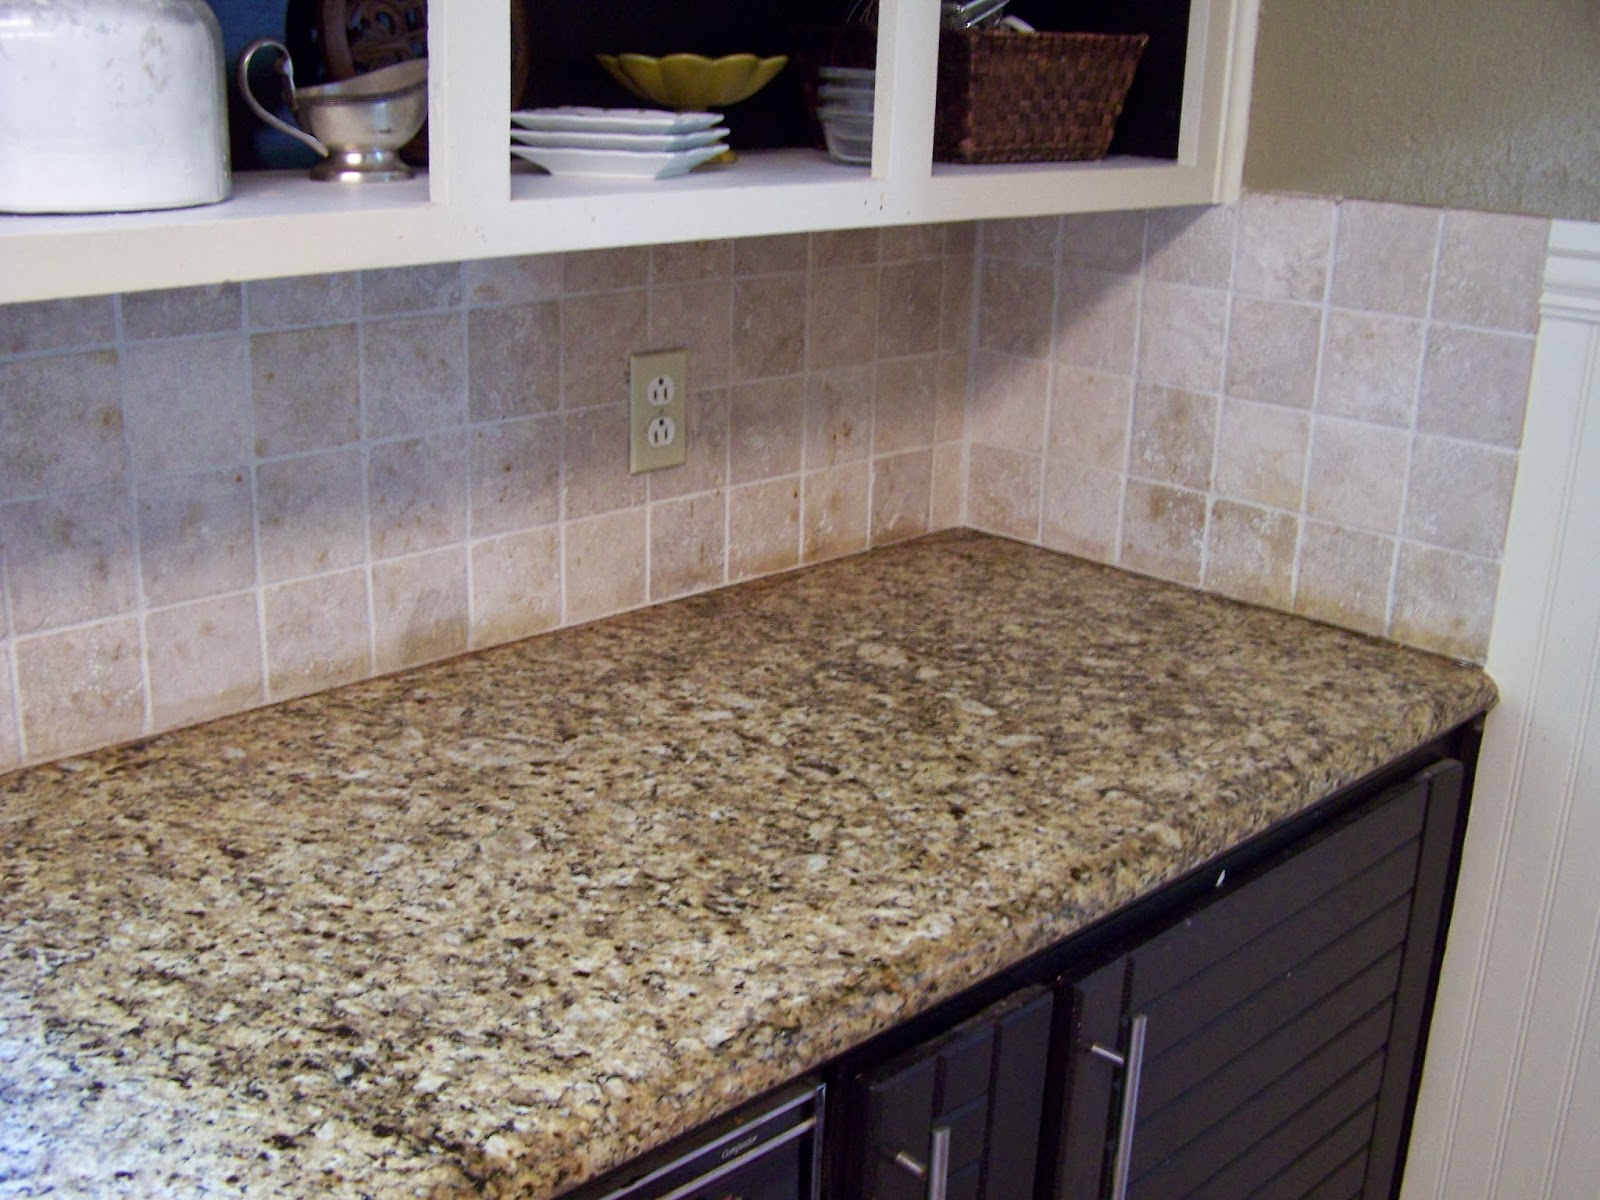 Older and wisor painting a tile backsplash and more easy kitchen painting a tile backsplash and more easy kitchen updates dailygadgetfo Choice Image